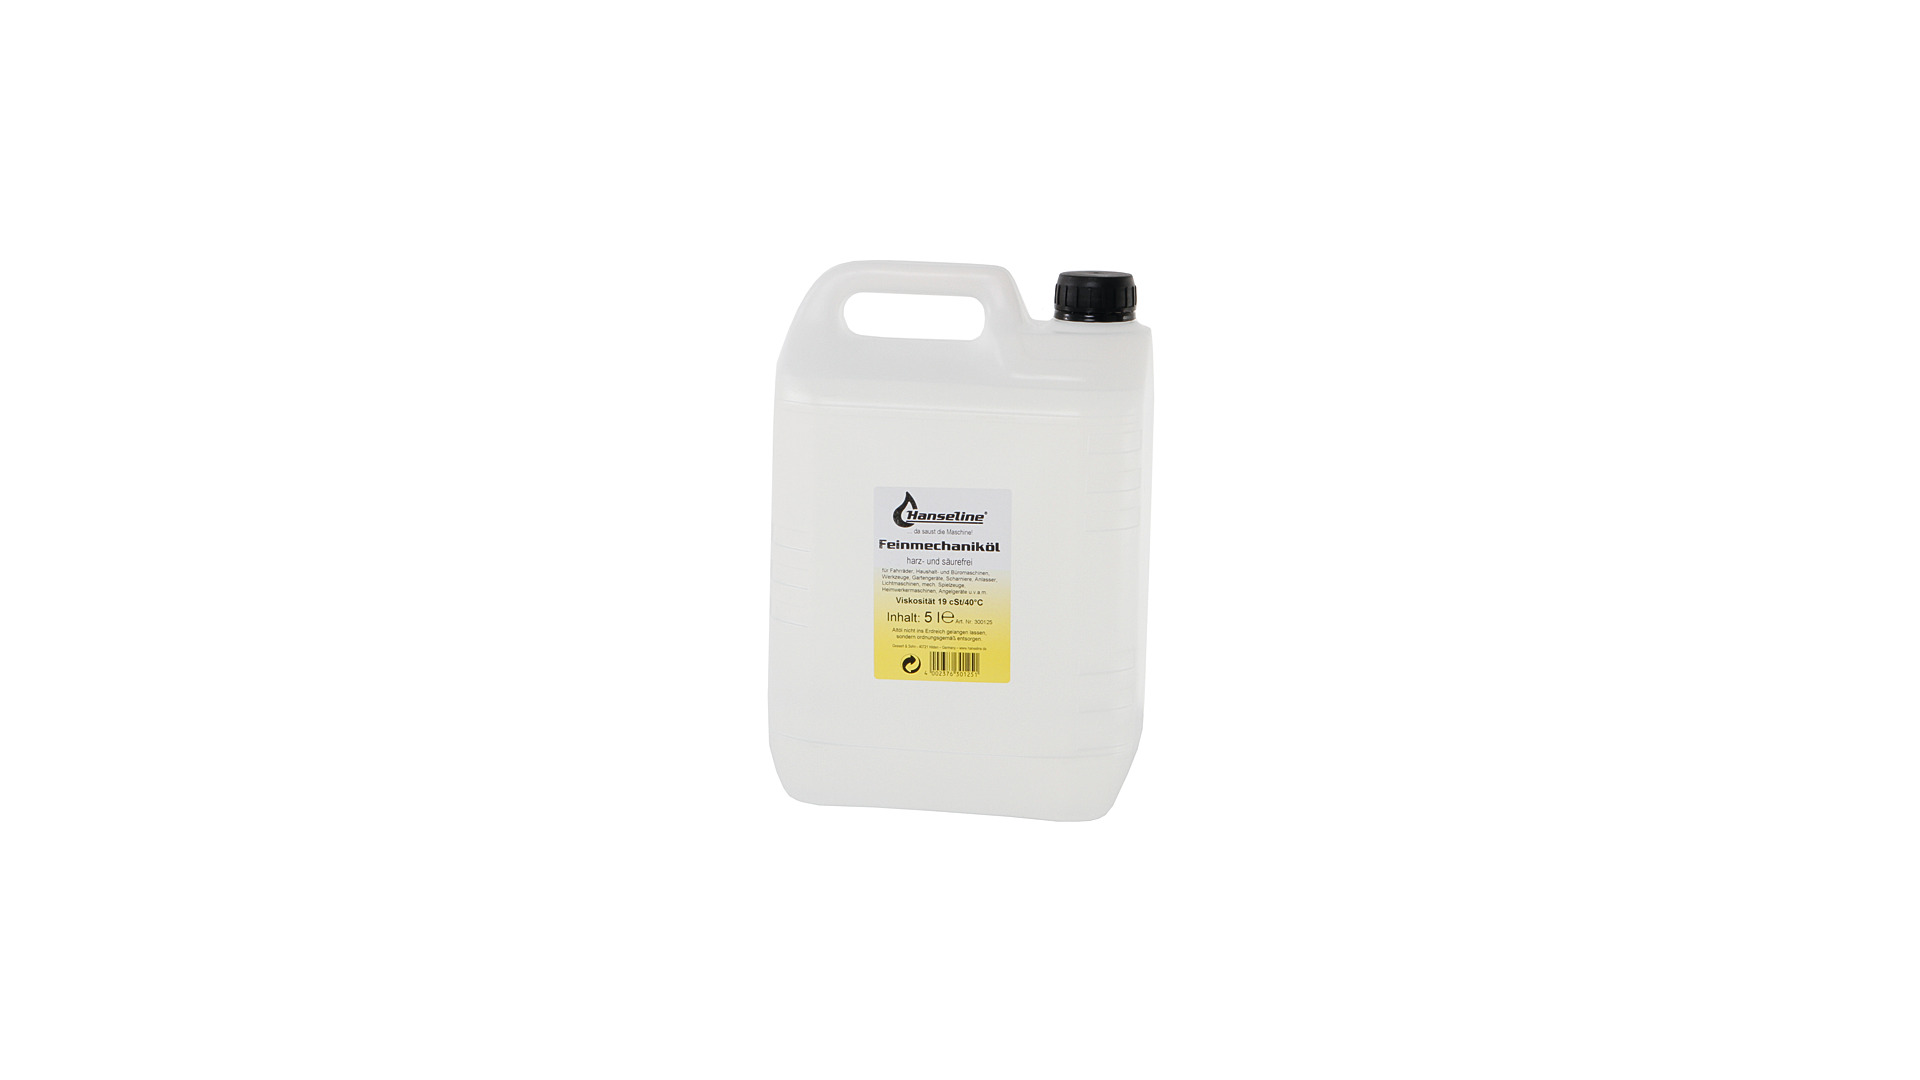 Hanseline Precision Mechanics Oil Bottle 5L